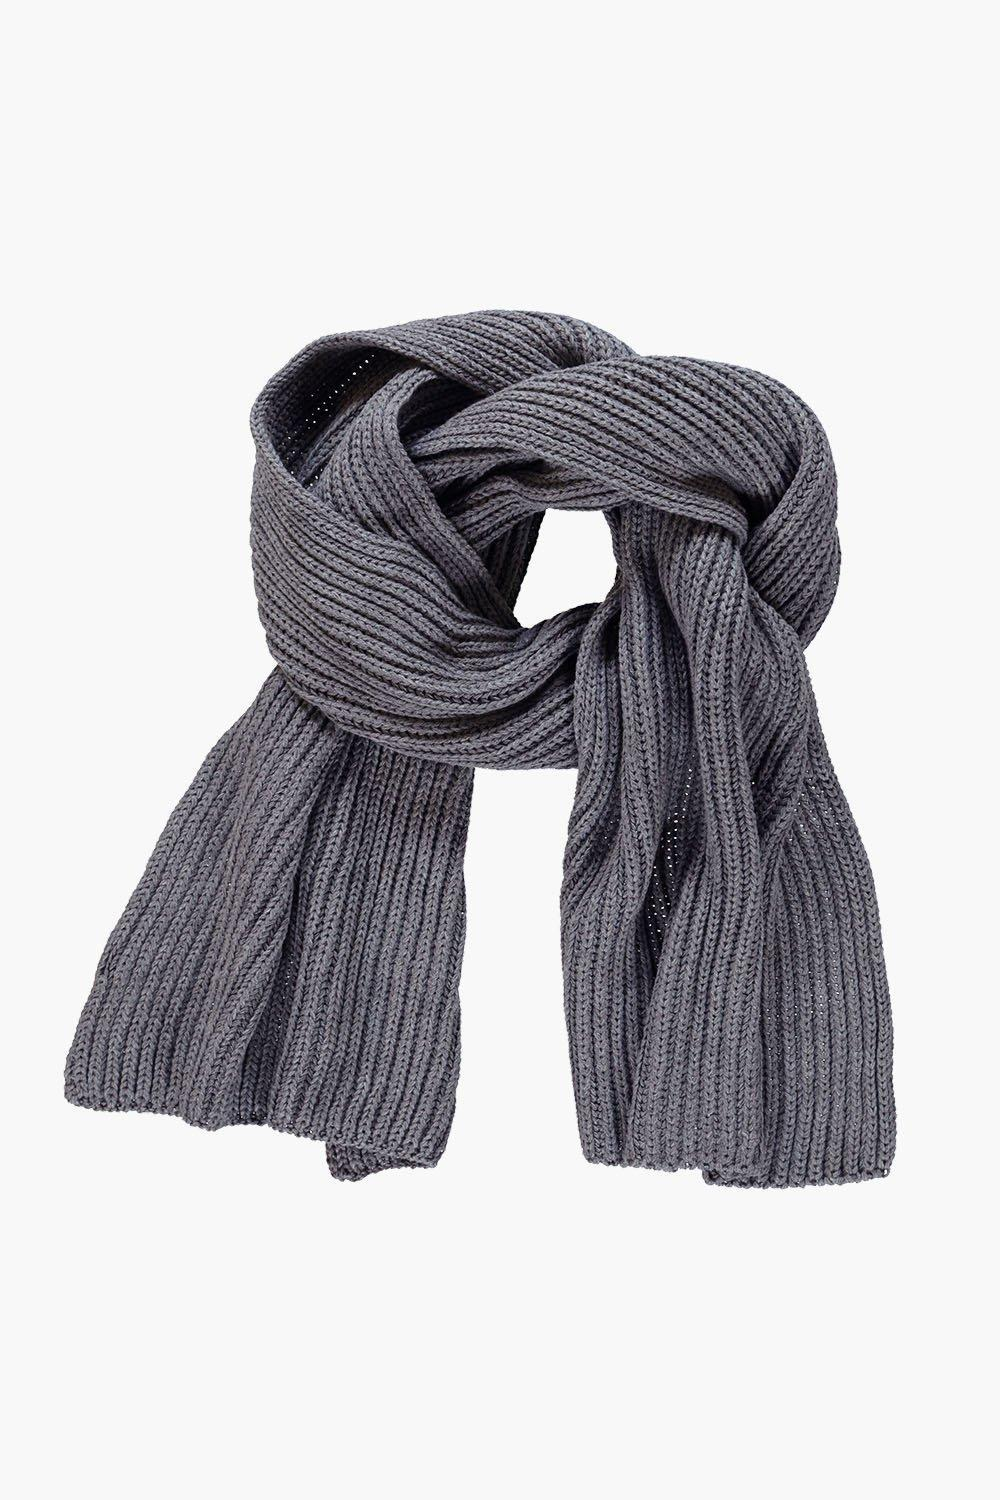 Ribbed Knit Oversize Scarf Grey - predominant colour: charcoal; occasions: casual, creative work; type of pattern: standard; style: regular; size: standard; material: knits; pattern: plain; wardrobe: basic; season: a/w 2016